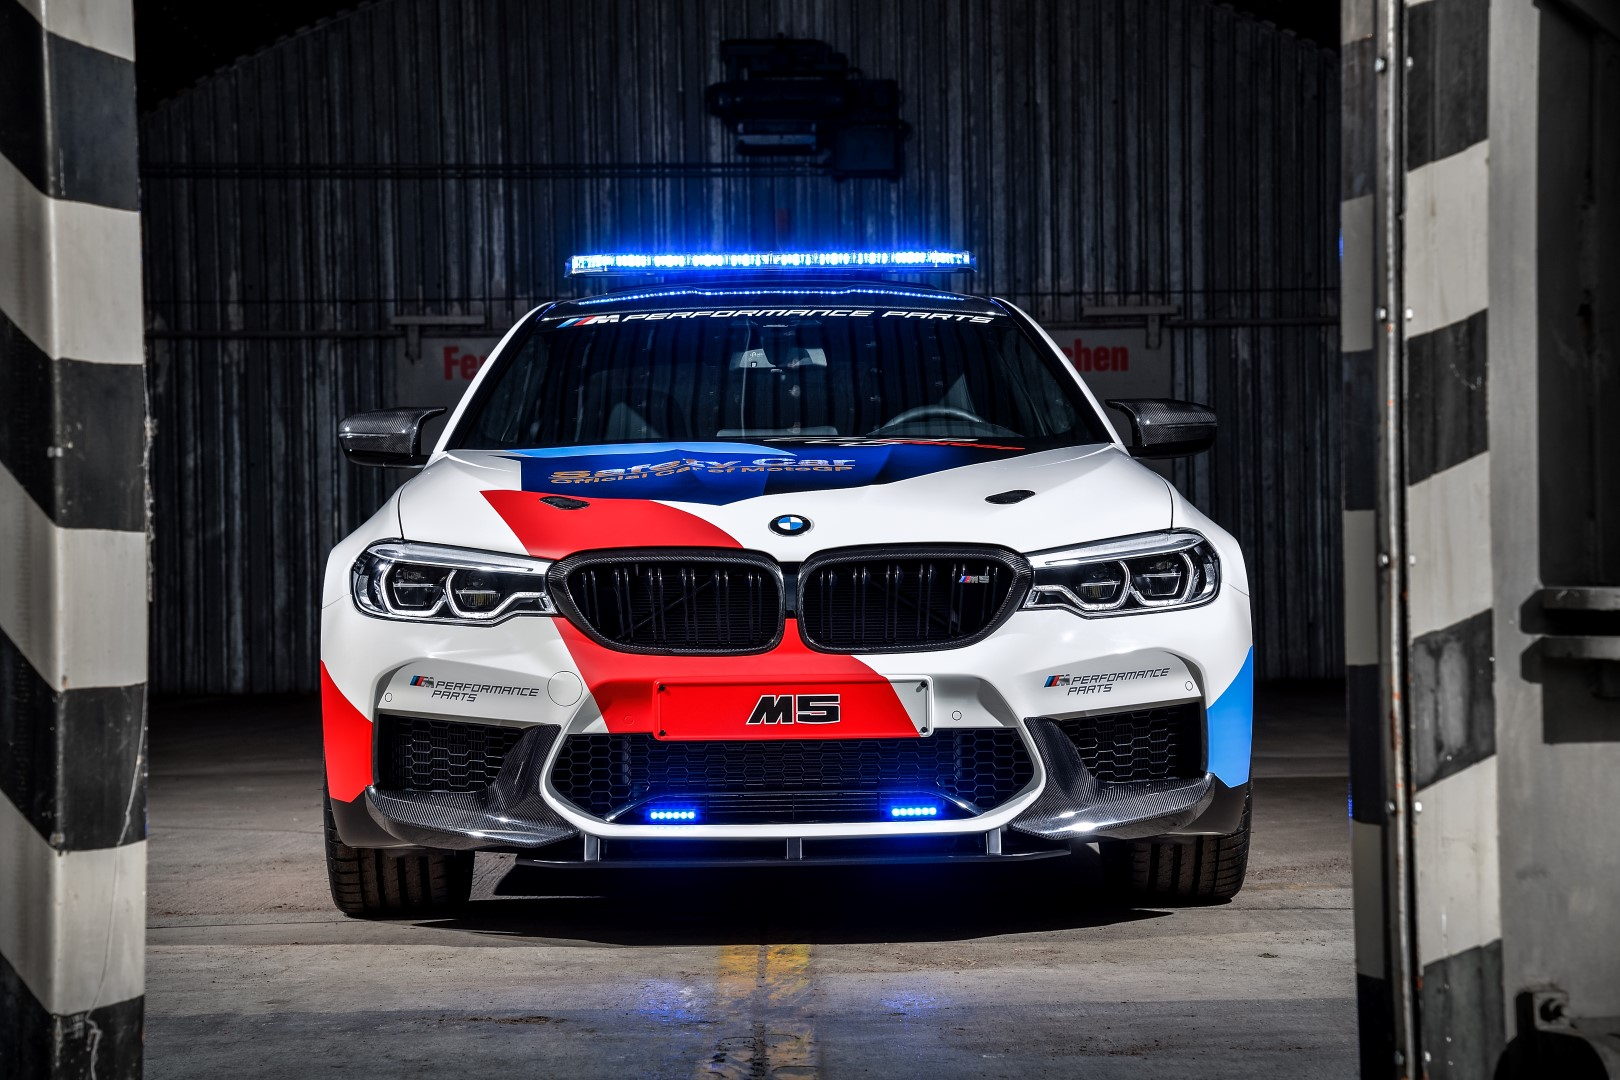 Bmw Show Off New M5 With M Performance Parts As Motogp Safety Car